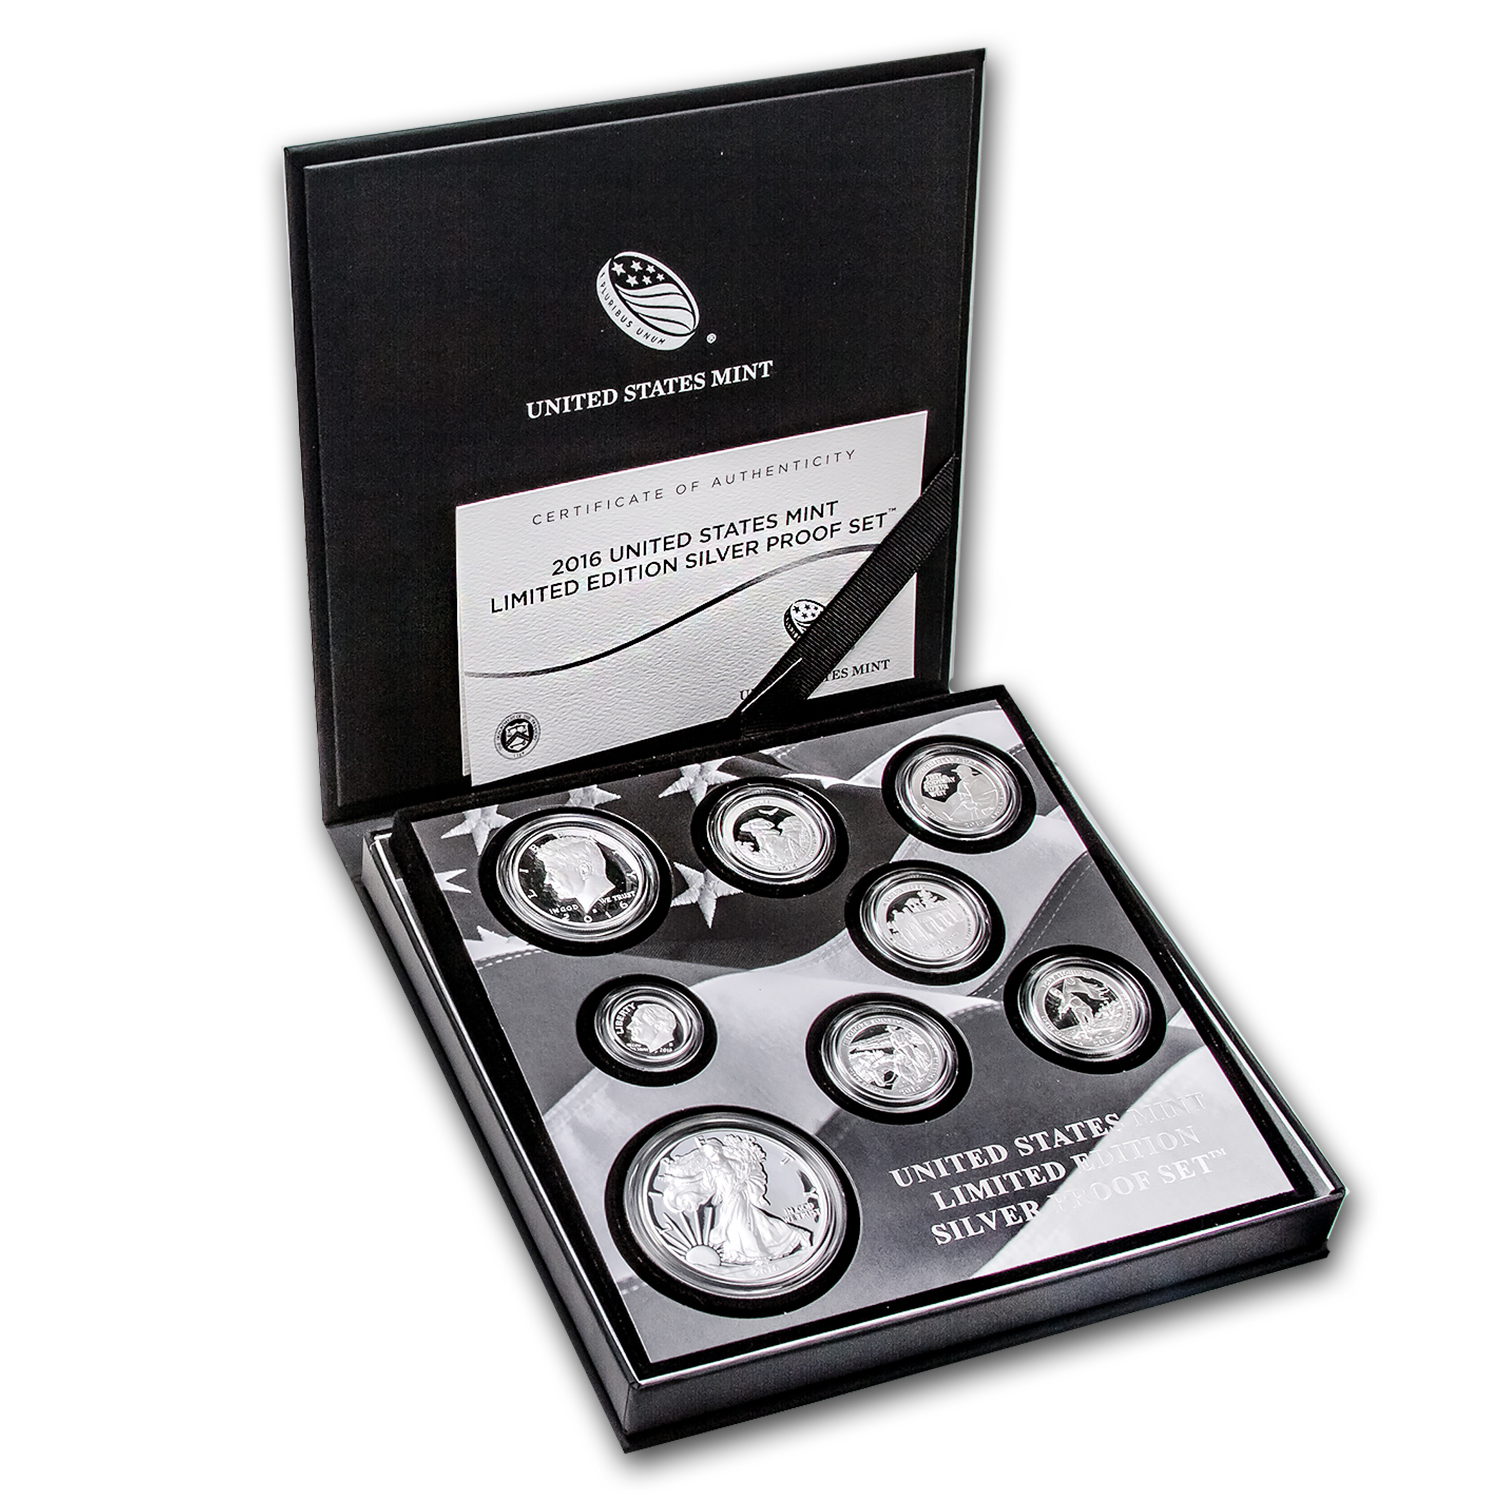 2016 Limited Edition Silver Proof Set